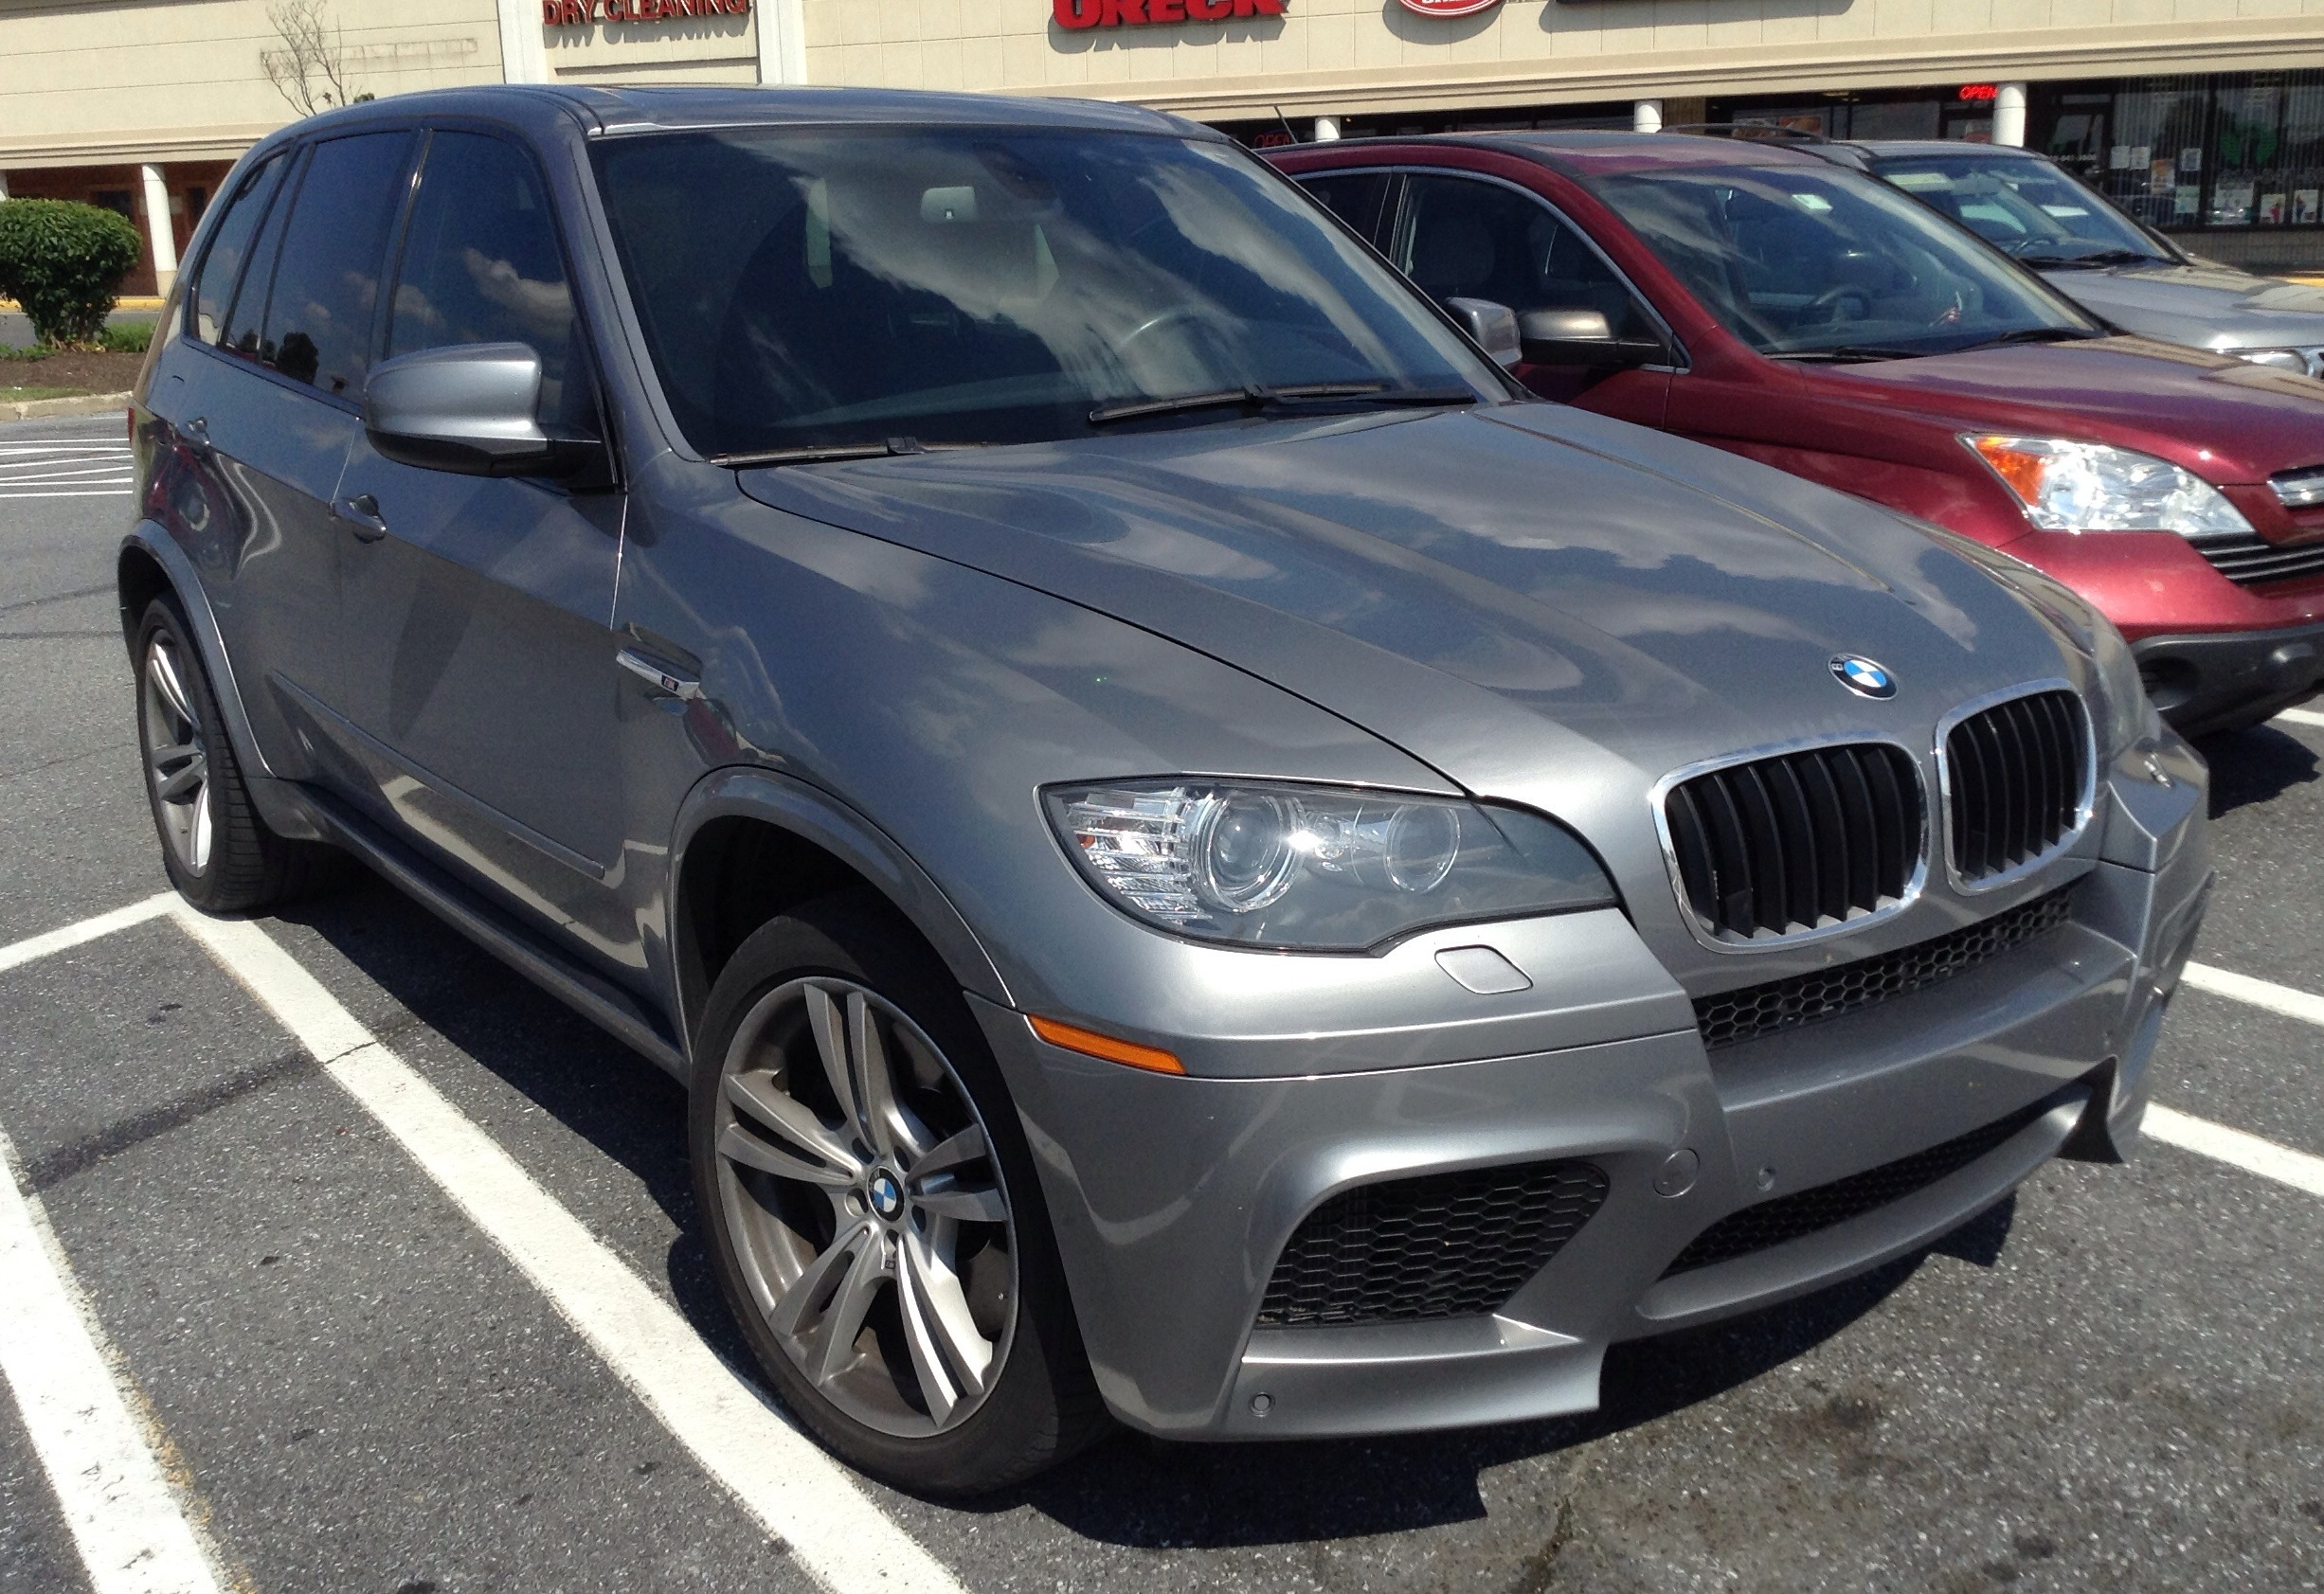 2004 BMW X5 4.4i - Owner s Manual (193 pages)